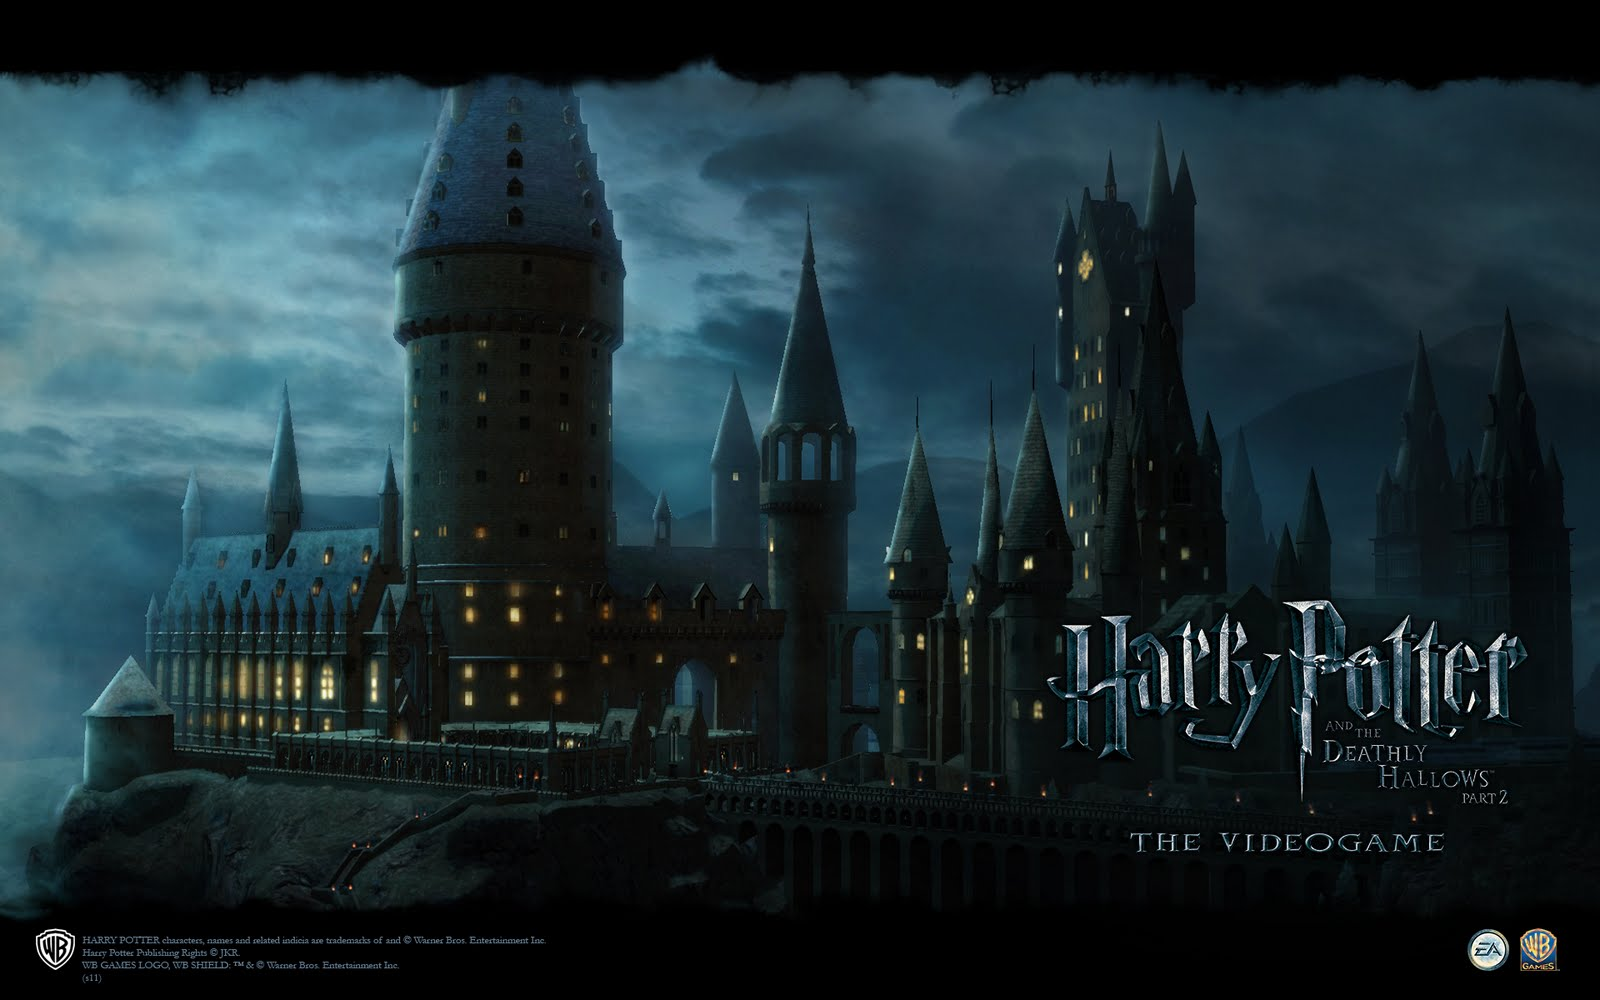 http://2.bp.blogspot.com/-MkQQOAuHr0E/Ti1D-PpefkI/AAAAAAAAAx4/XR5y-q0f9Pc/s1600/harry-potter-and-the-deathly-hallows-part-2-game-wallpaper-hogsmeade-free-hq%2B%25282%2529.jpg